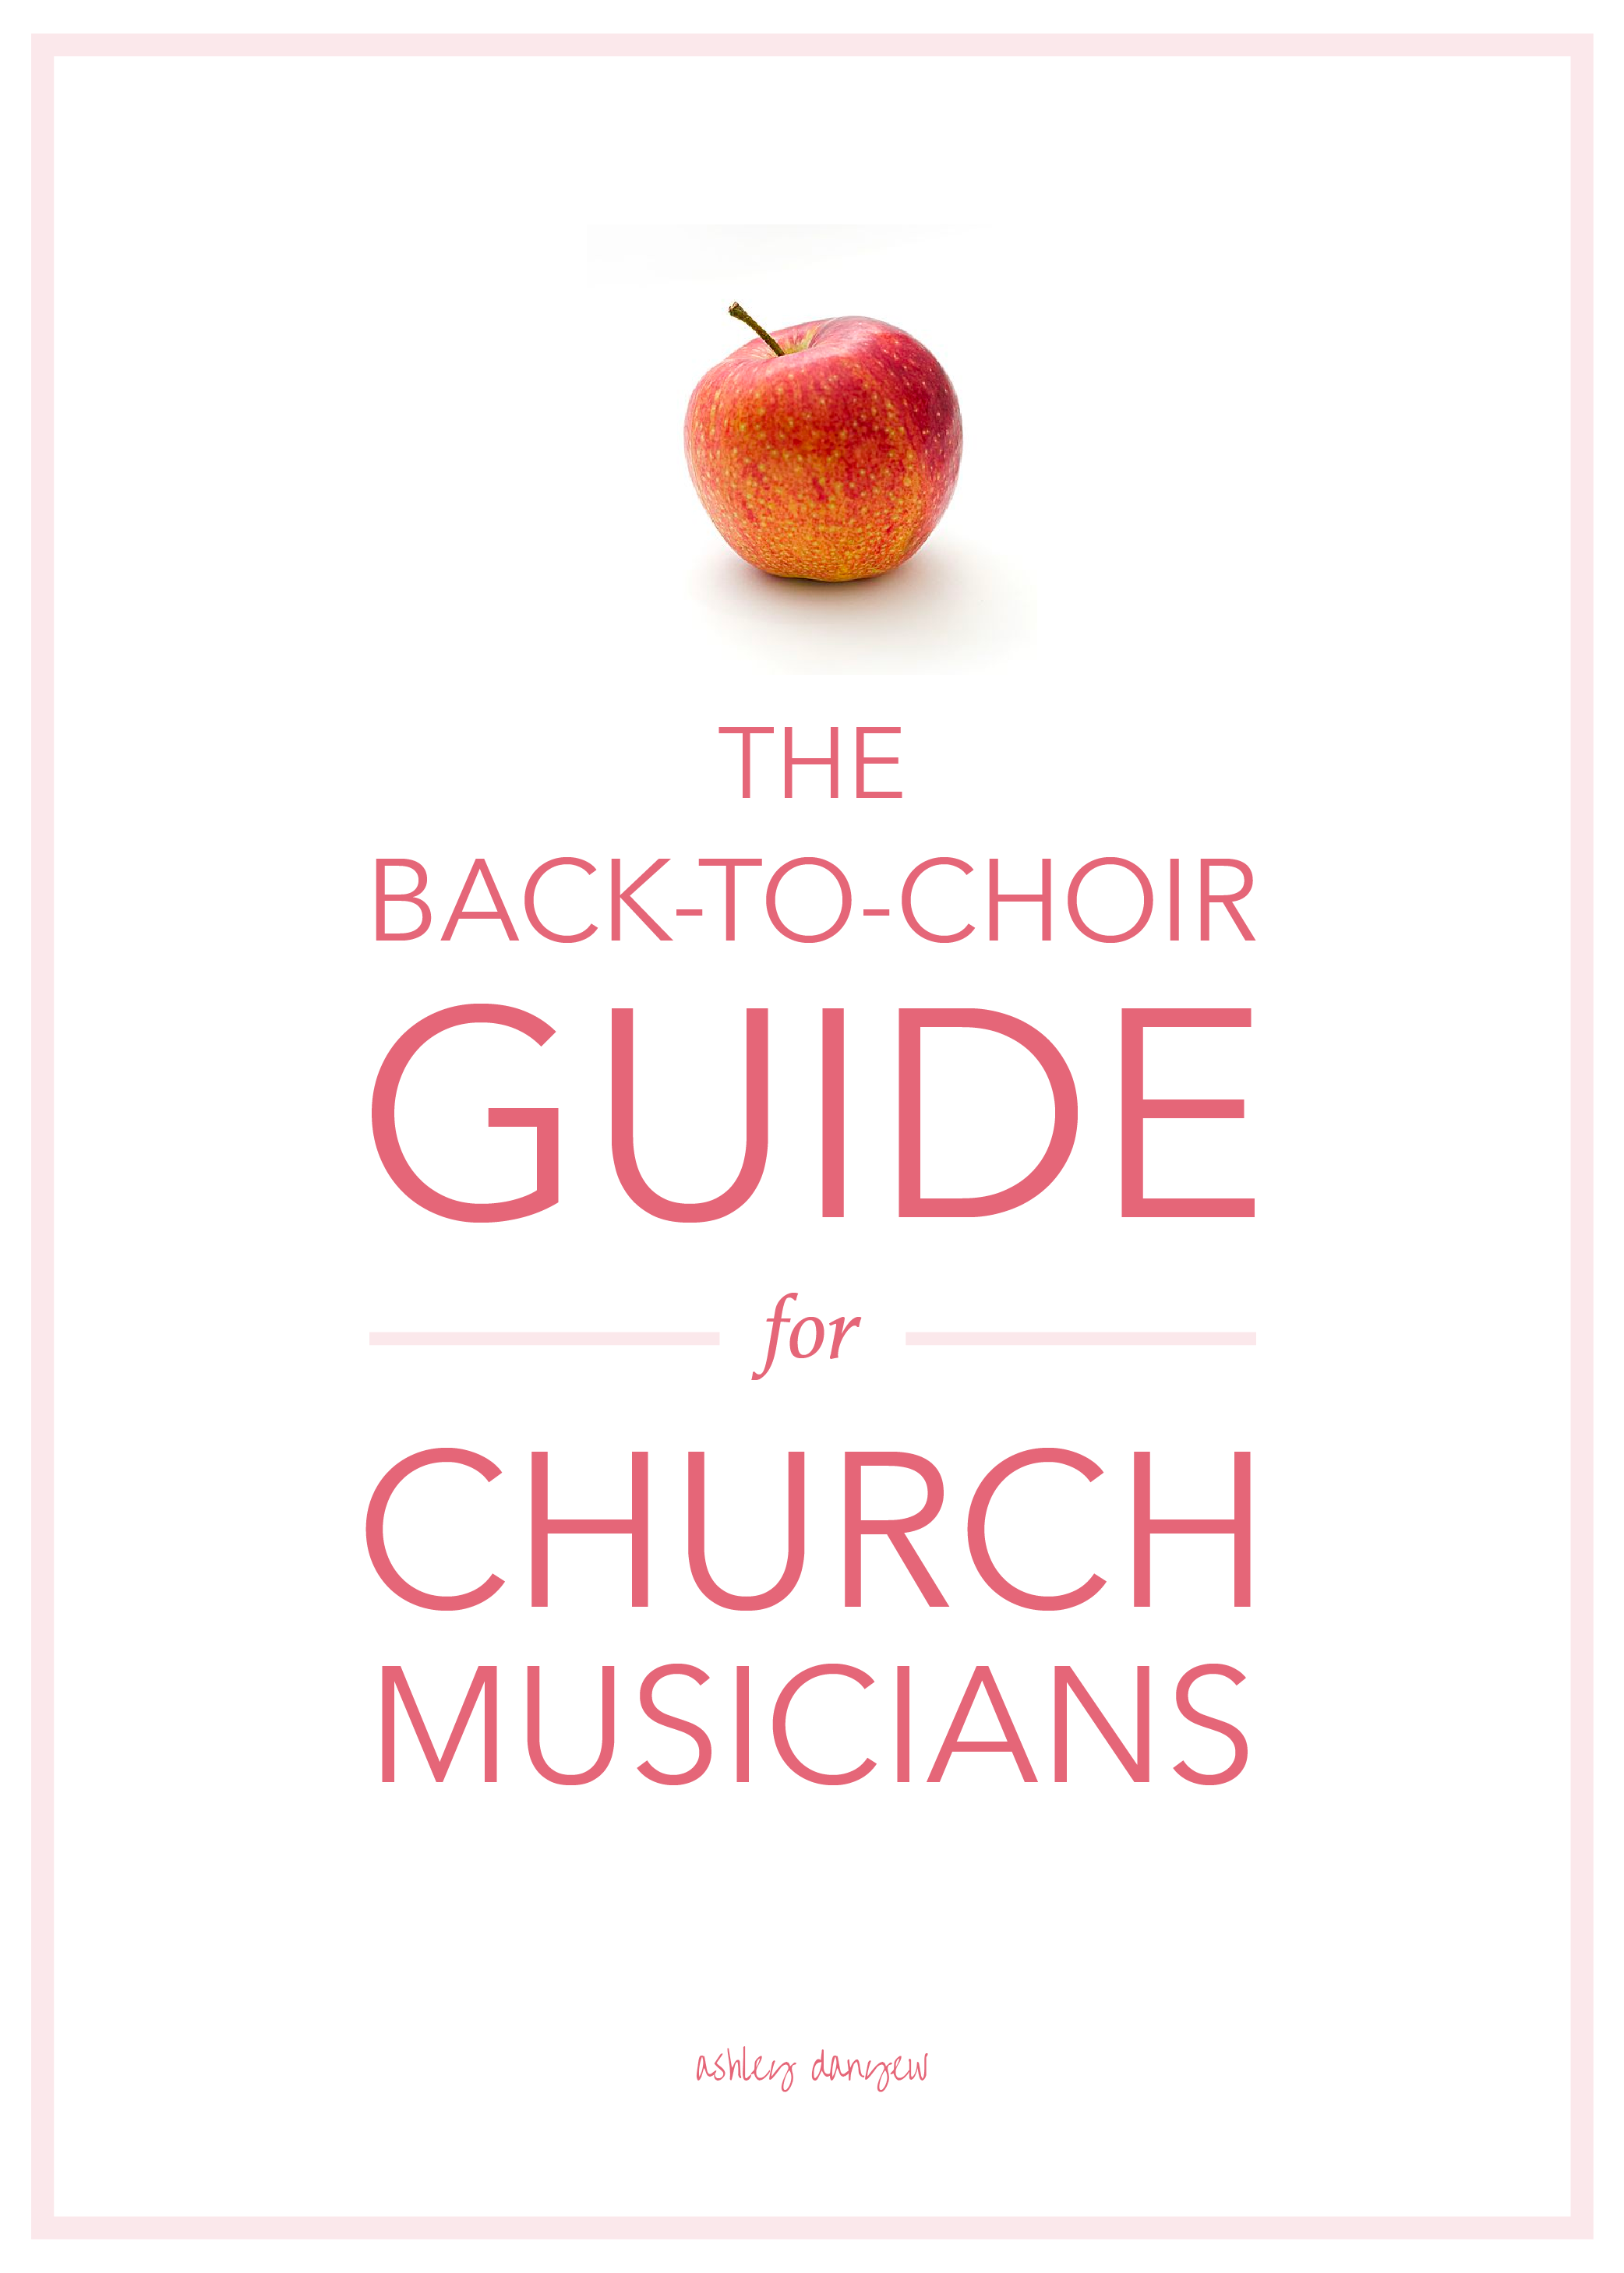 The Back-to-Choir Guide for Church Musicians